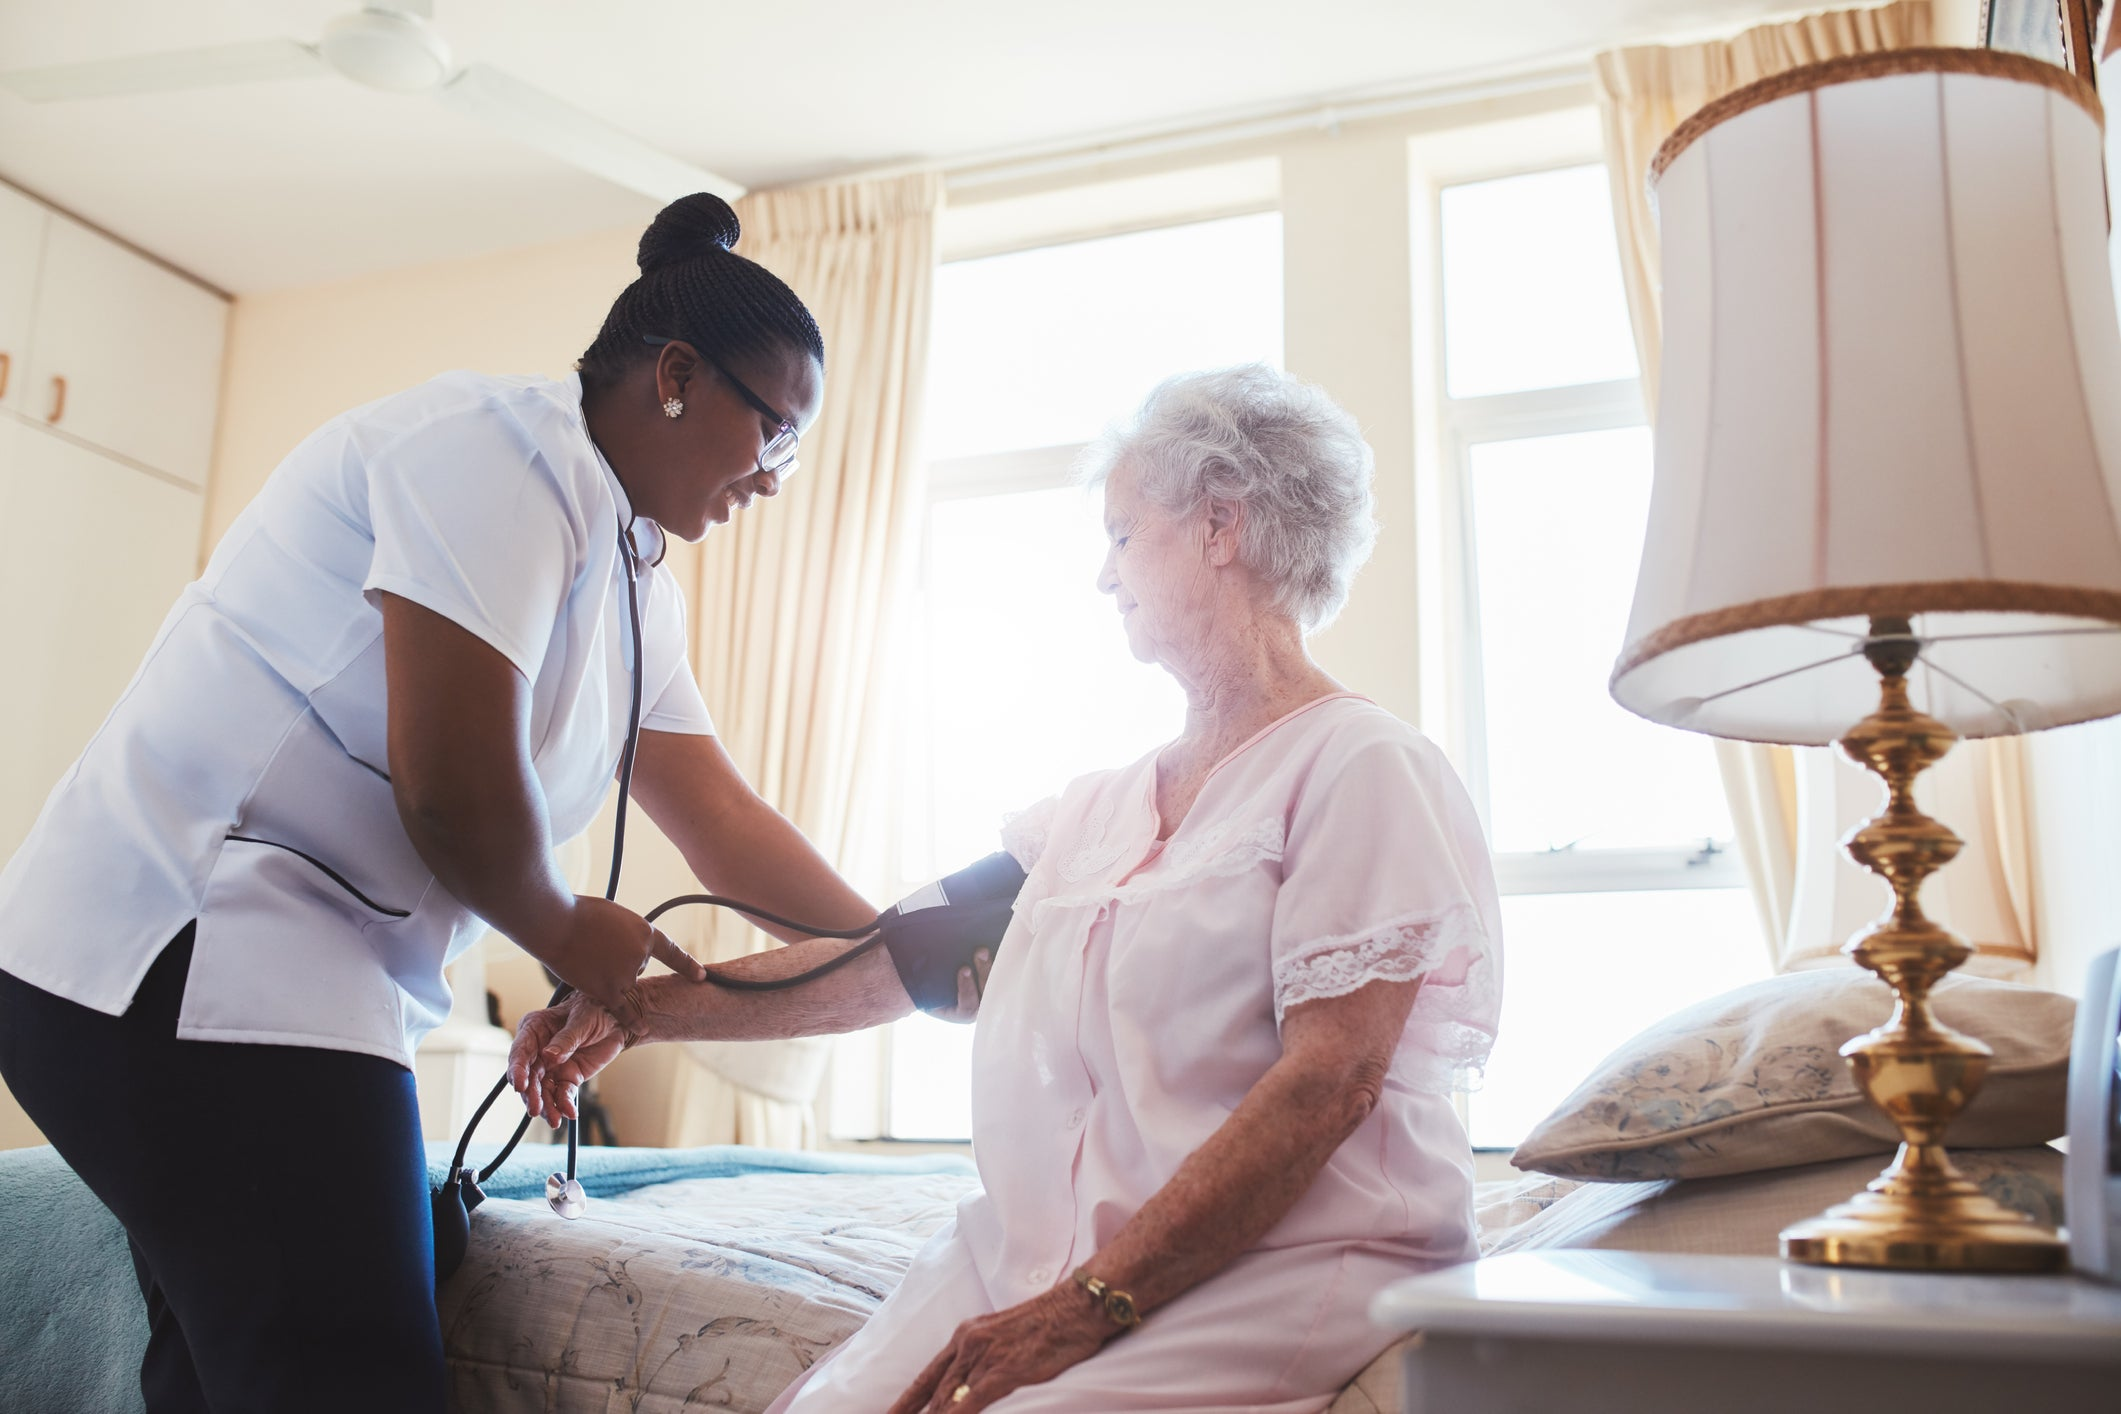 Female nurse checks blood pressure of older female